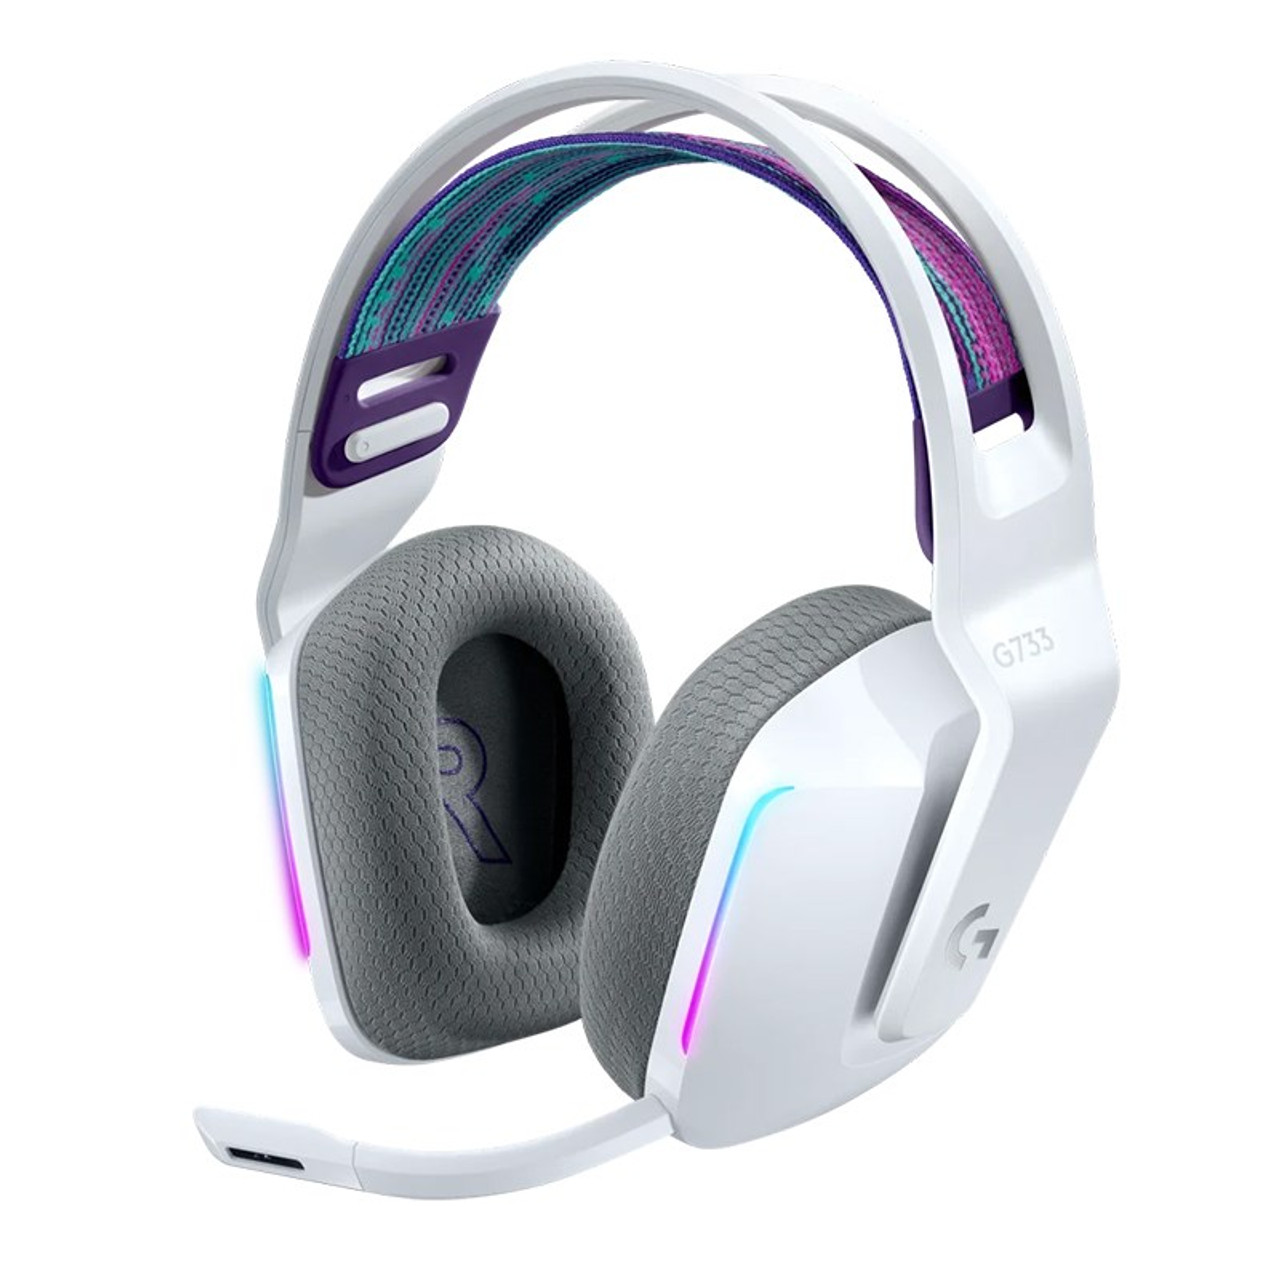 Image for Logitech G733 LIGHTSPEED Wireless RGB Gaming Headset - White CX Computer Superstore